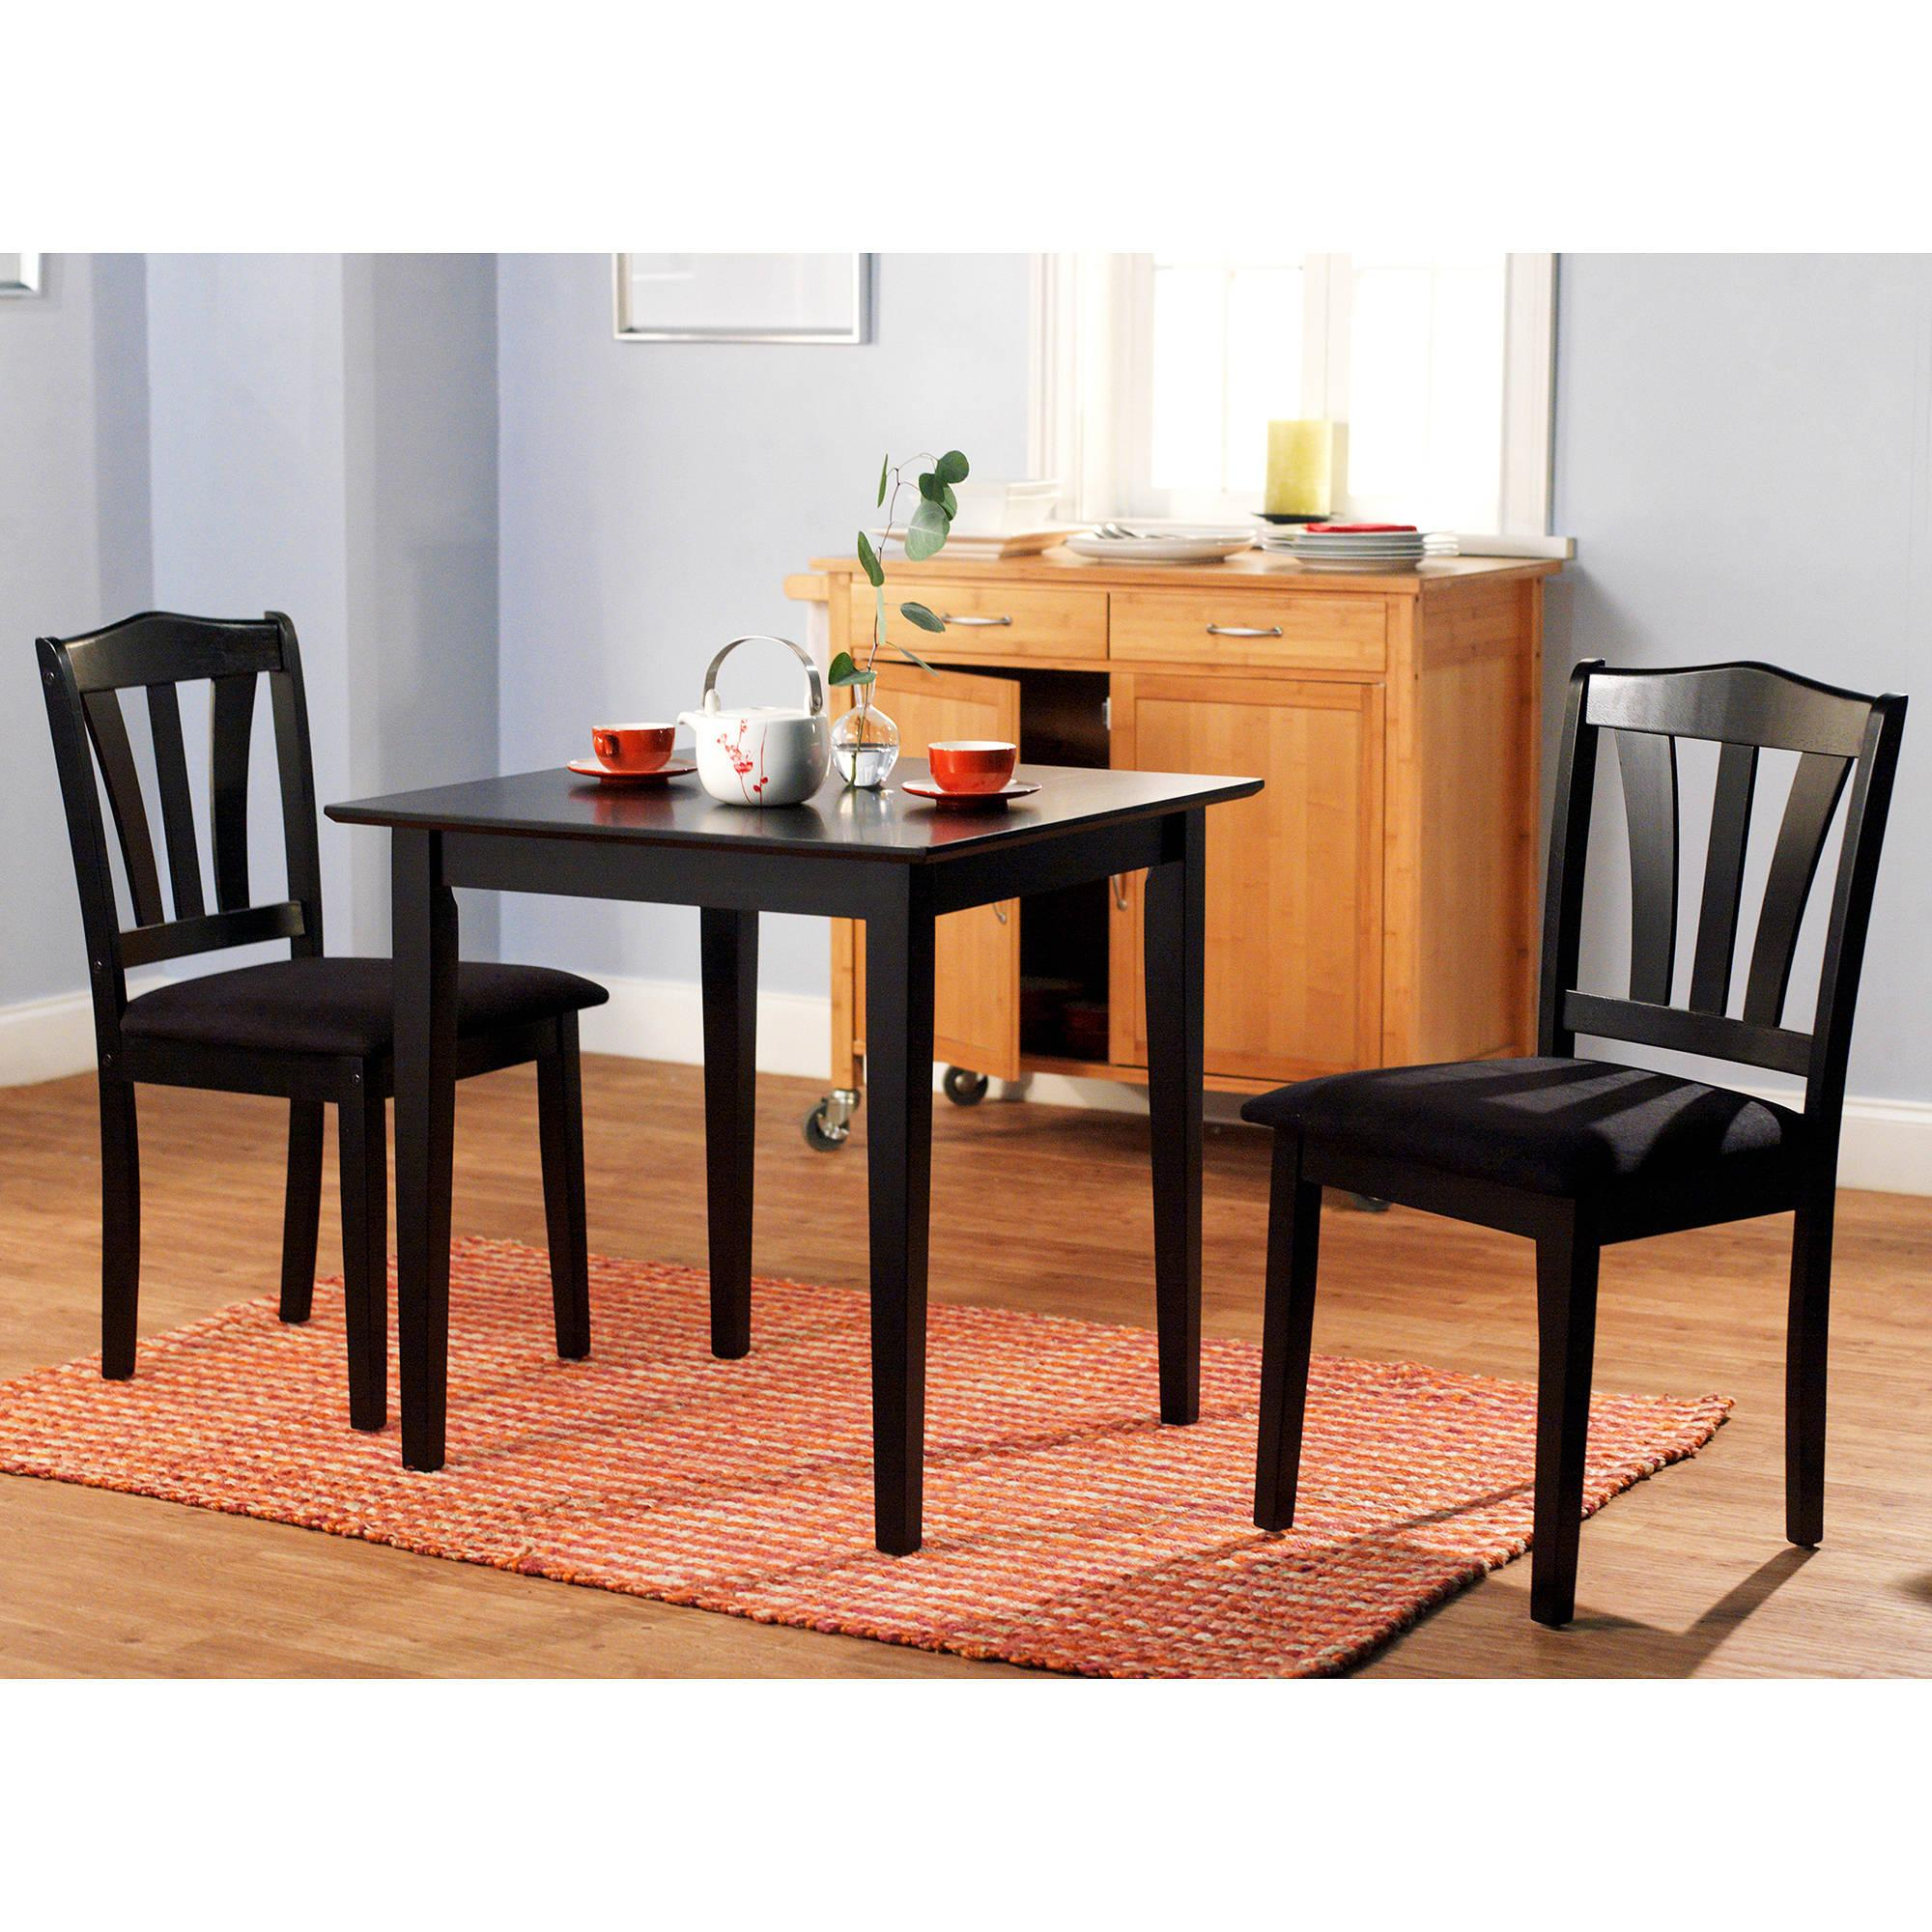 Table And Chair Dining Sets: 3 Piece Dining Set Table 2 Chairs Kitchen Room Wood